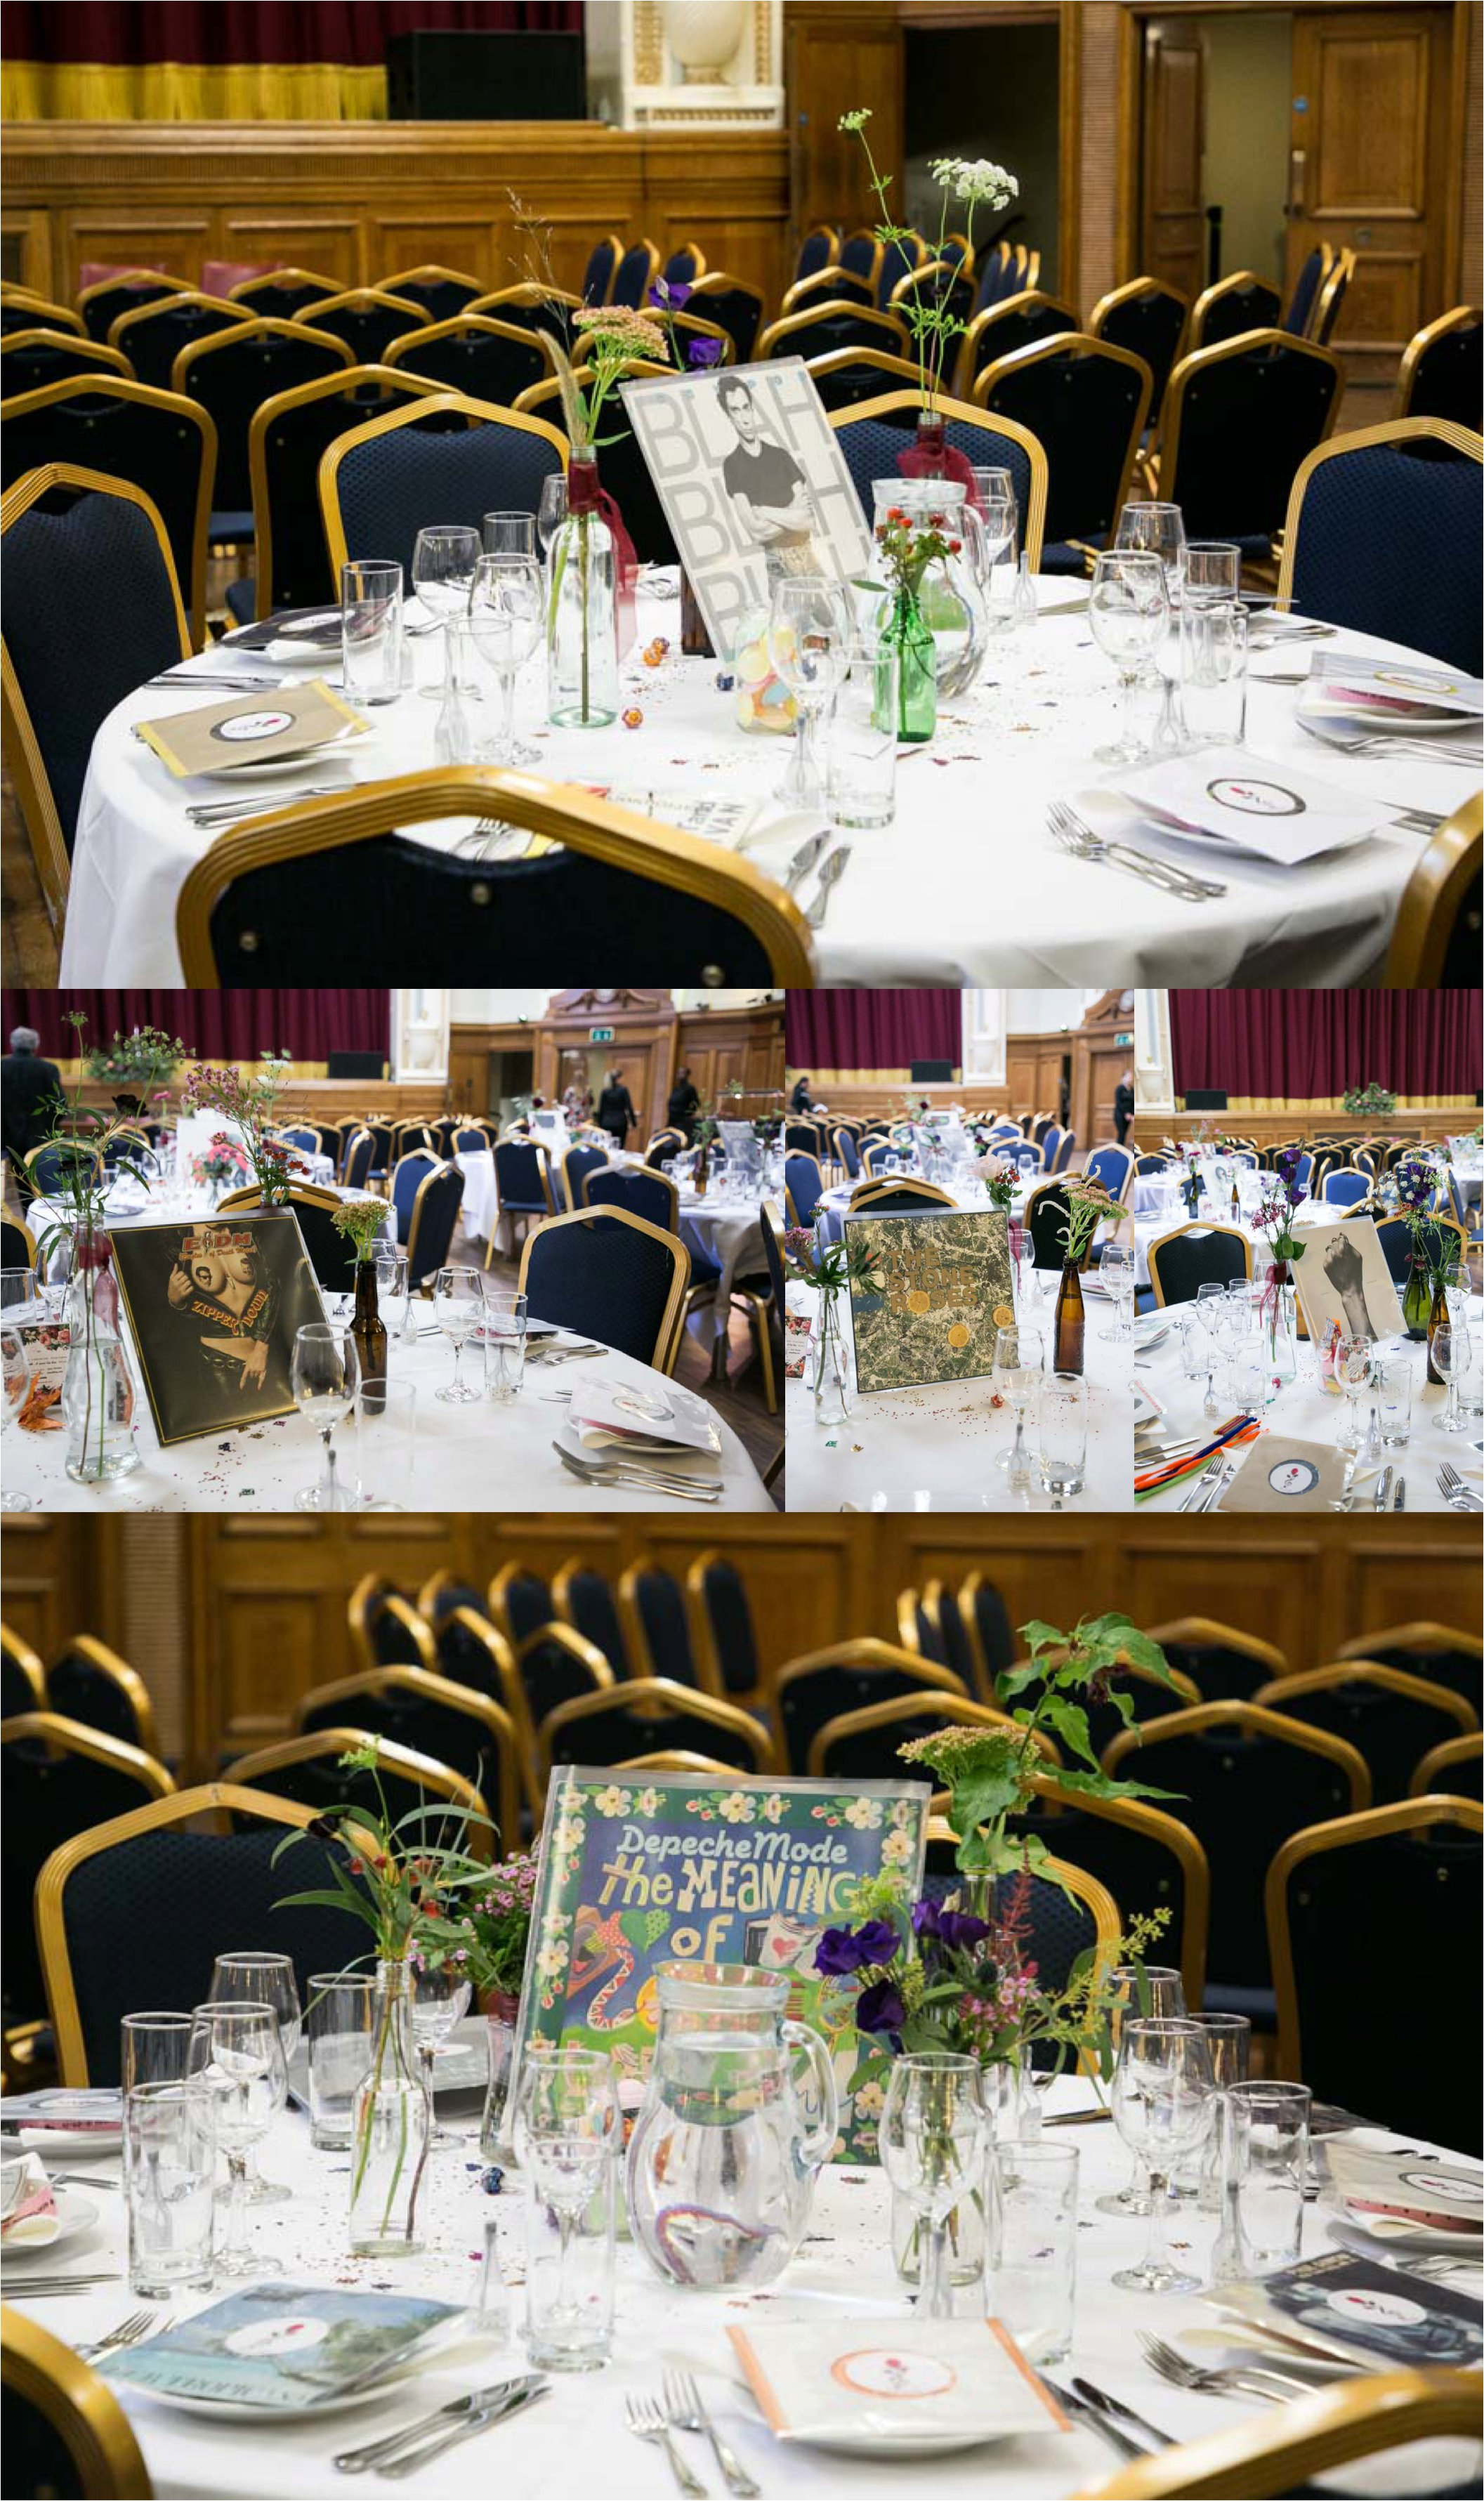 tables decorated for music themed quirky wedding at islington assembly rooms, london